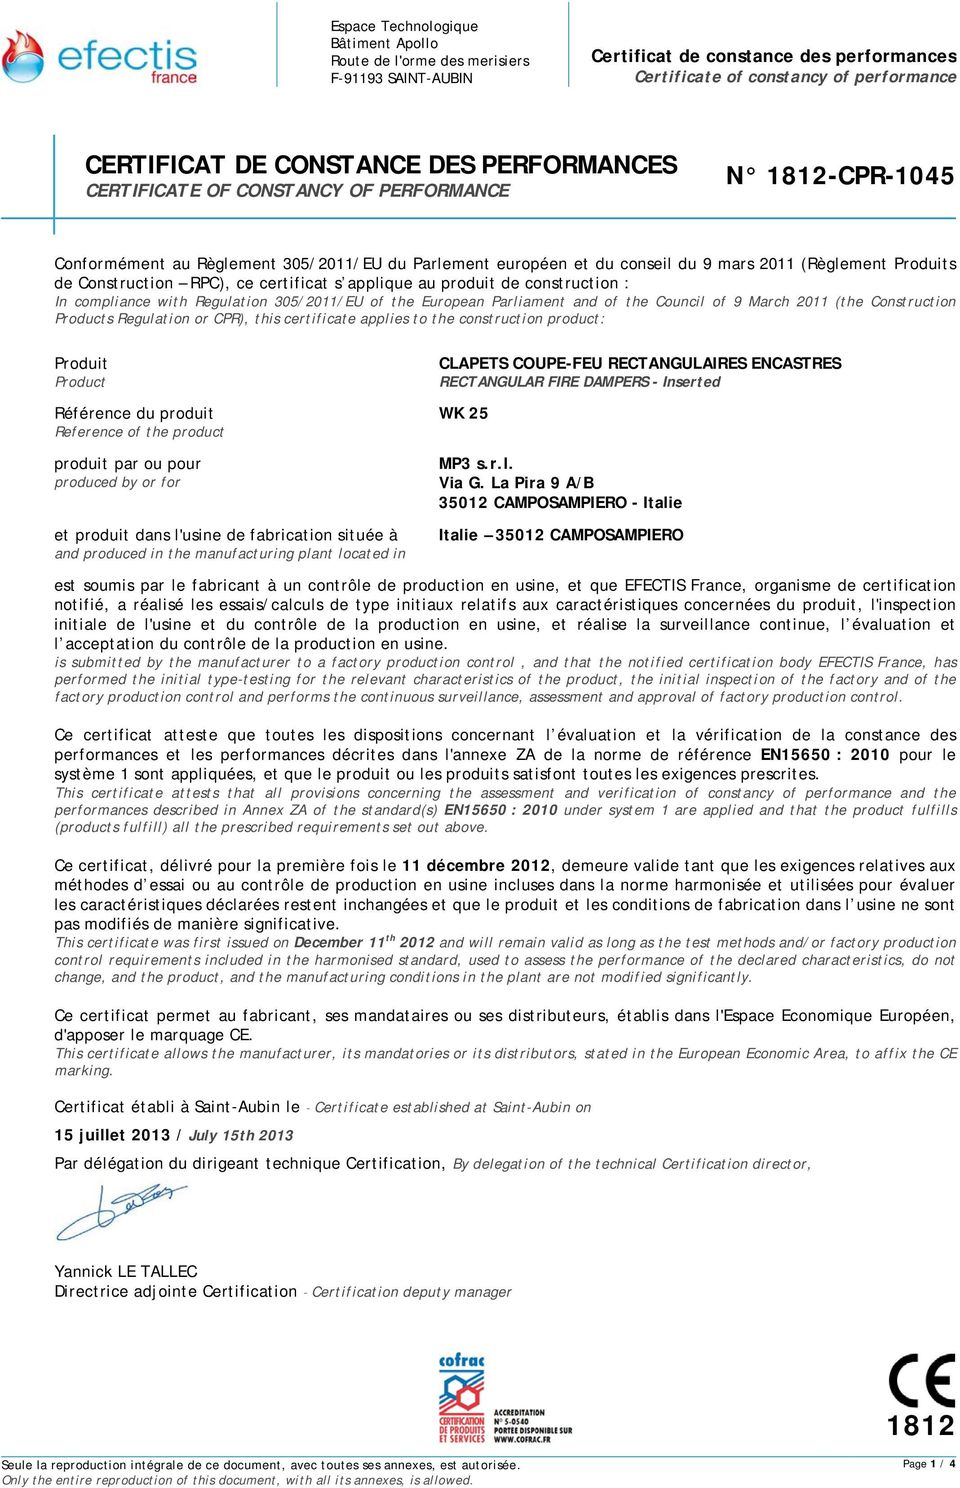 applique au produit de construction : In compliance with Regulation 305/2011/EU of the European Parliament and of the Council of 9 March 2011 (the Construction Products Regulation or CPR), this